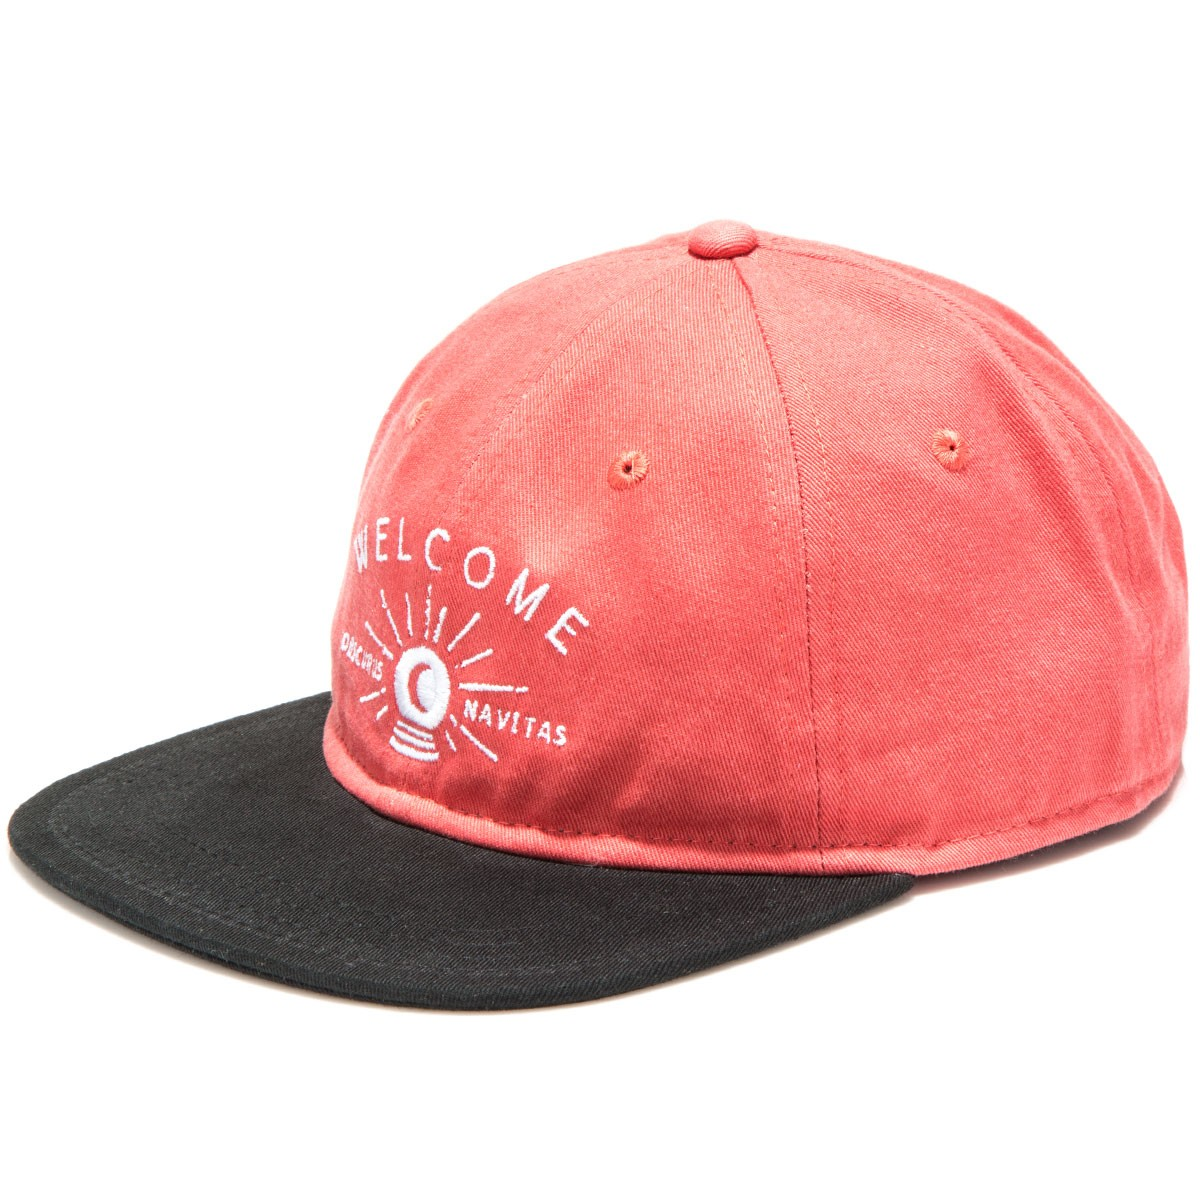 Welcome Dark Energy Unstructured 6-Panel Slider Hat - Coral/Black